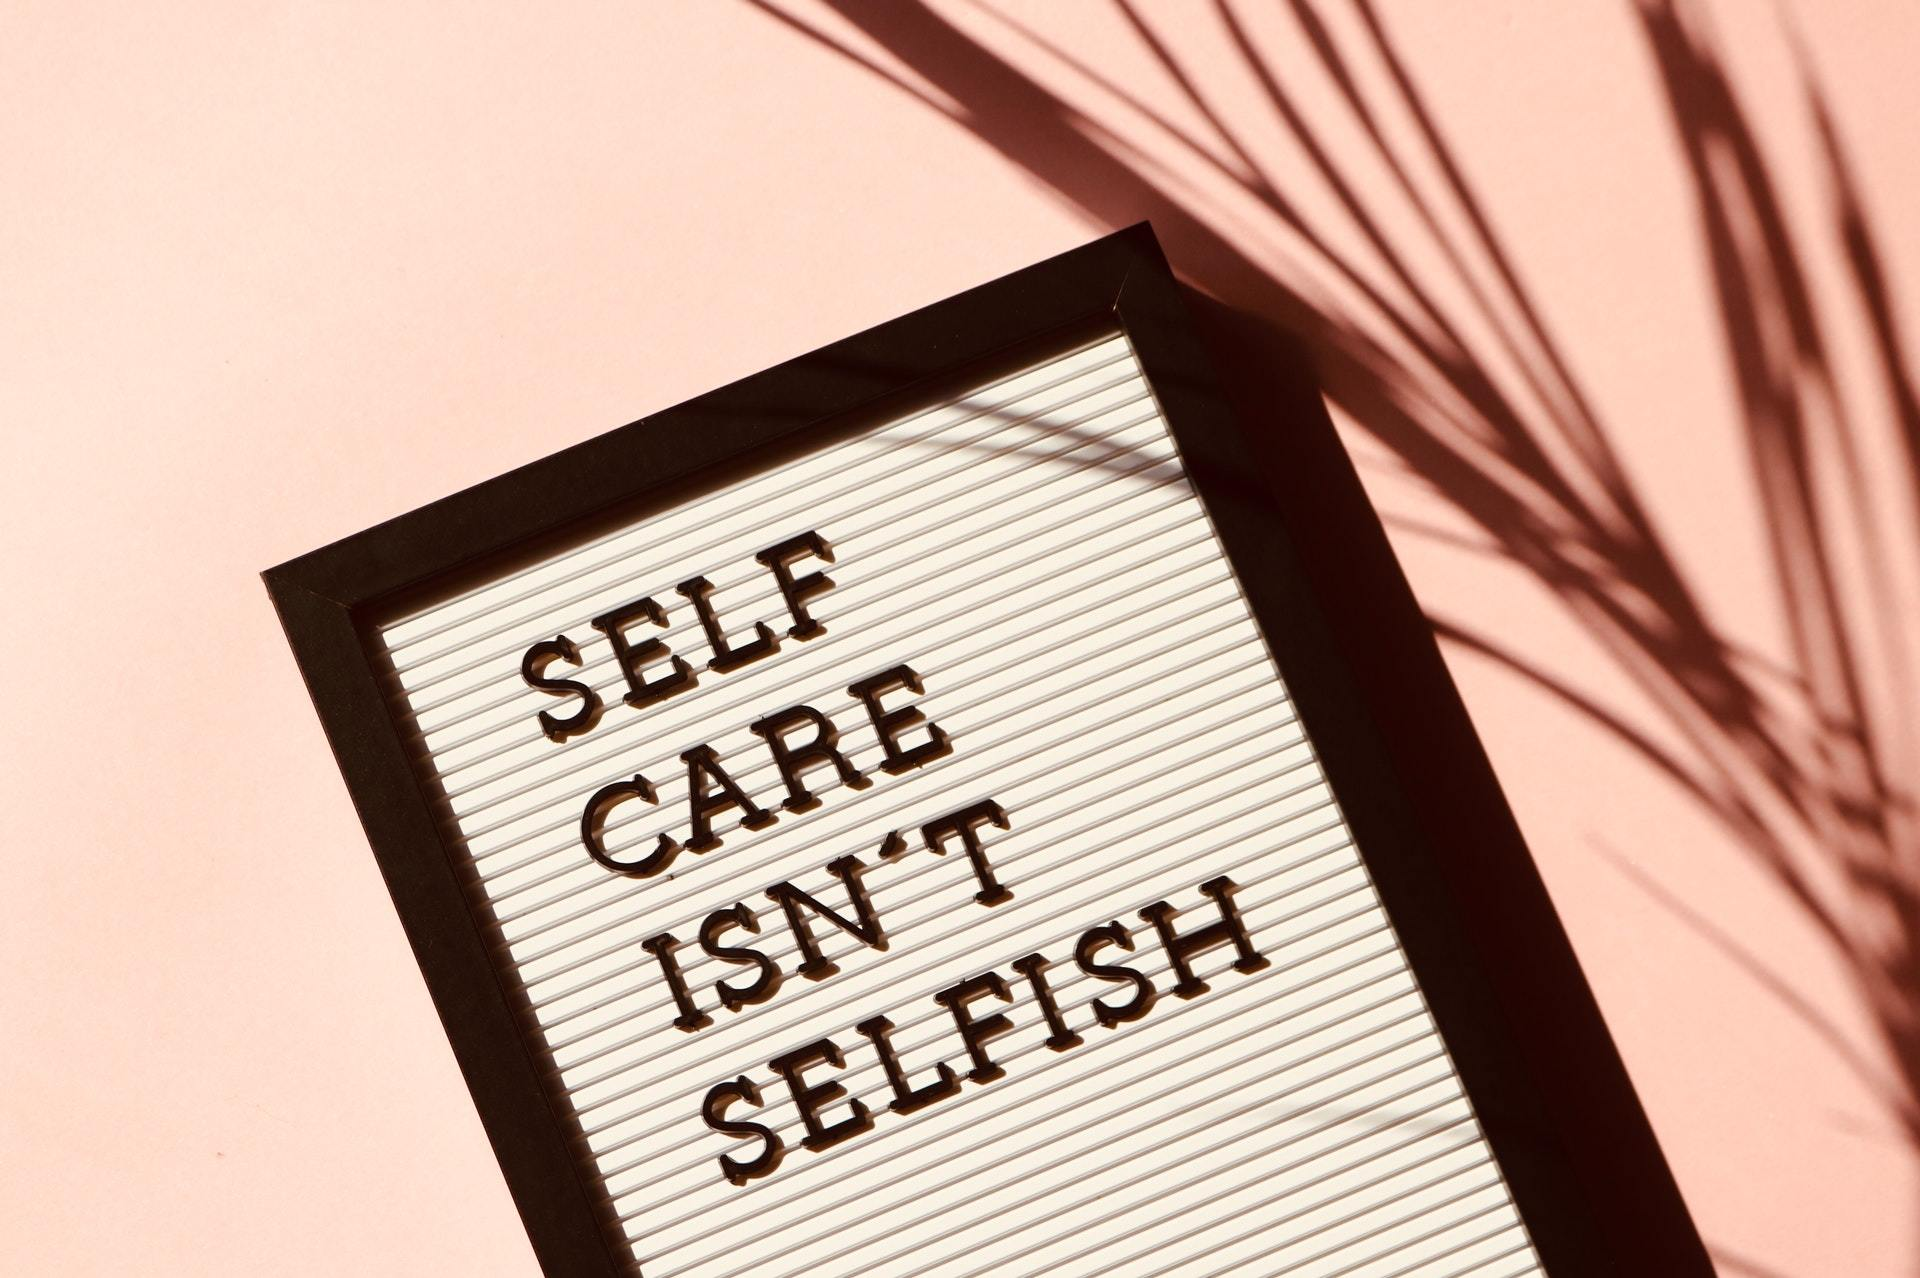 Self-Care Virtual Assistant